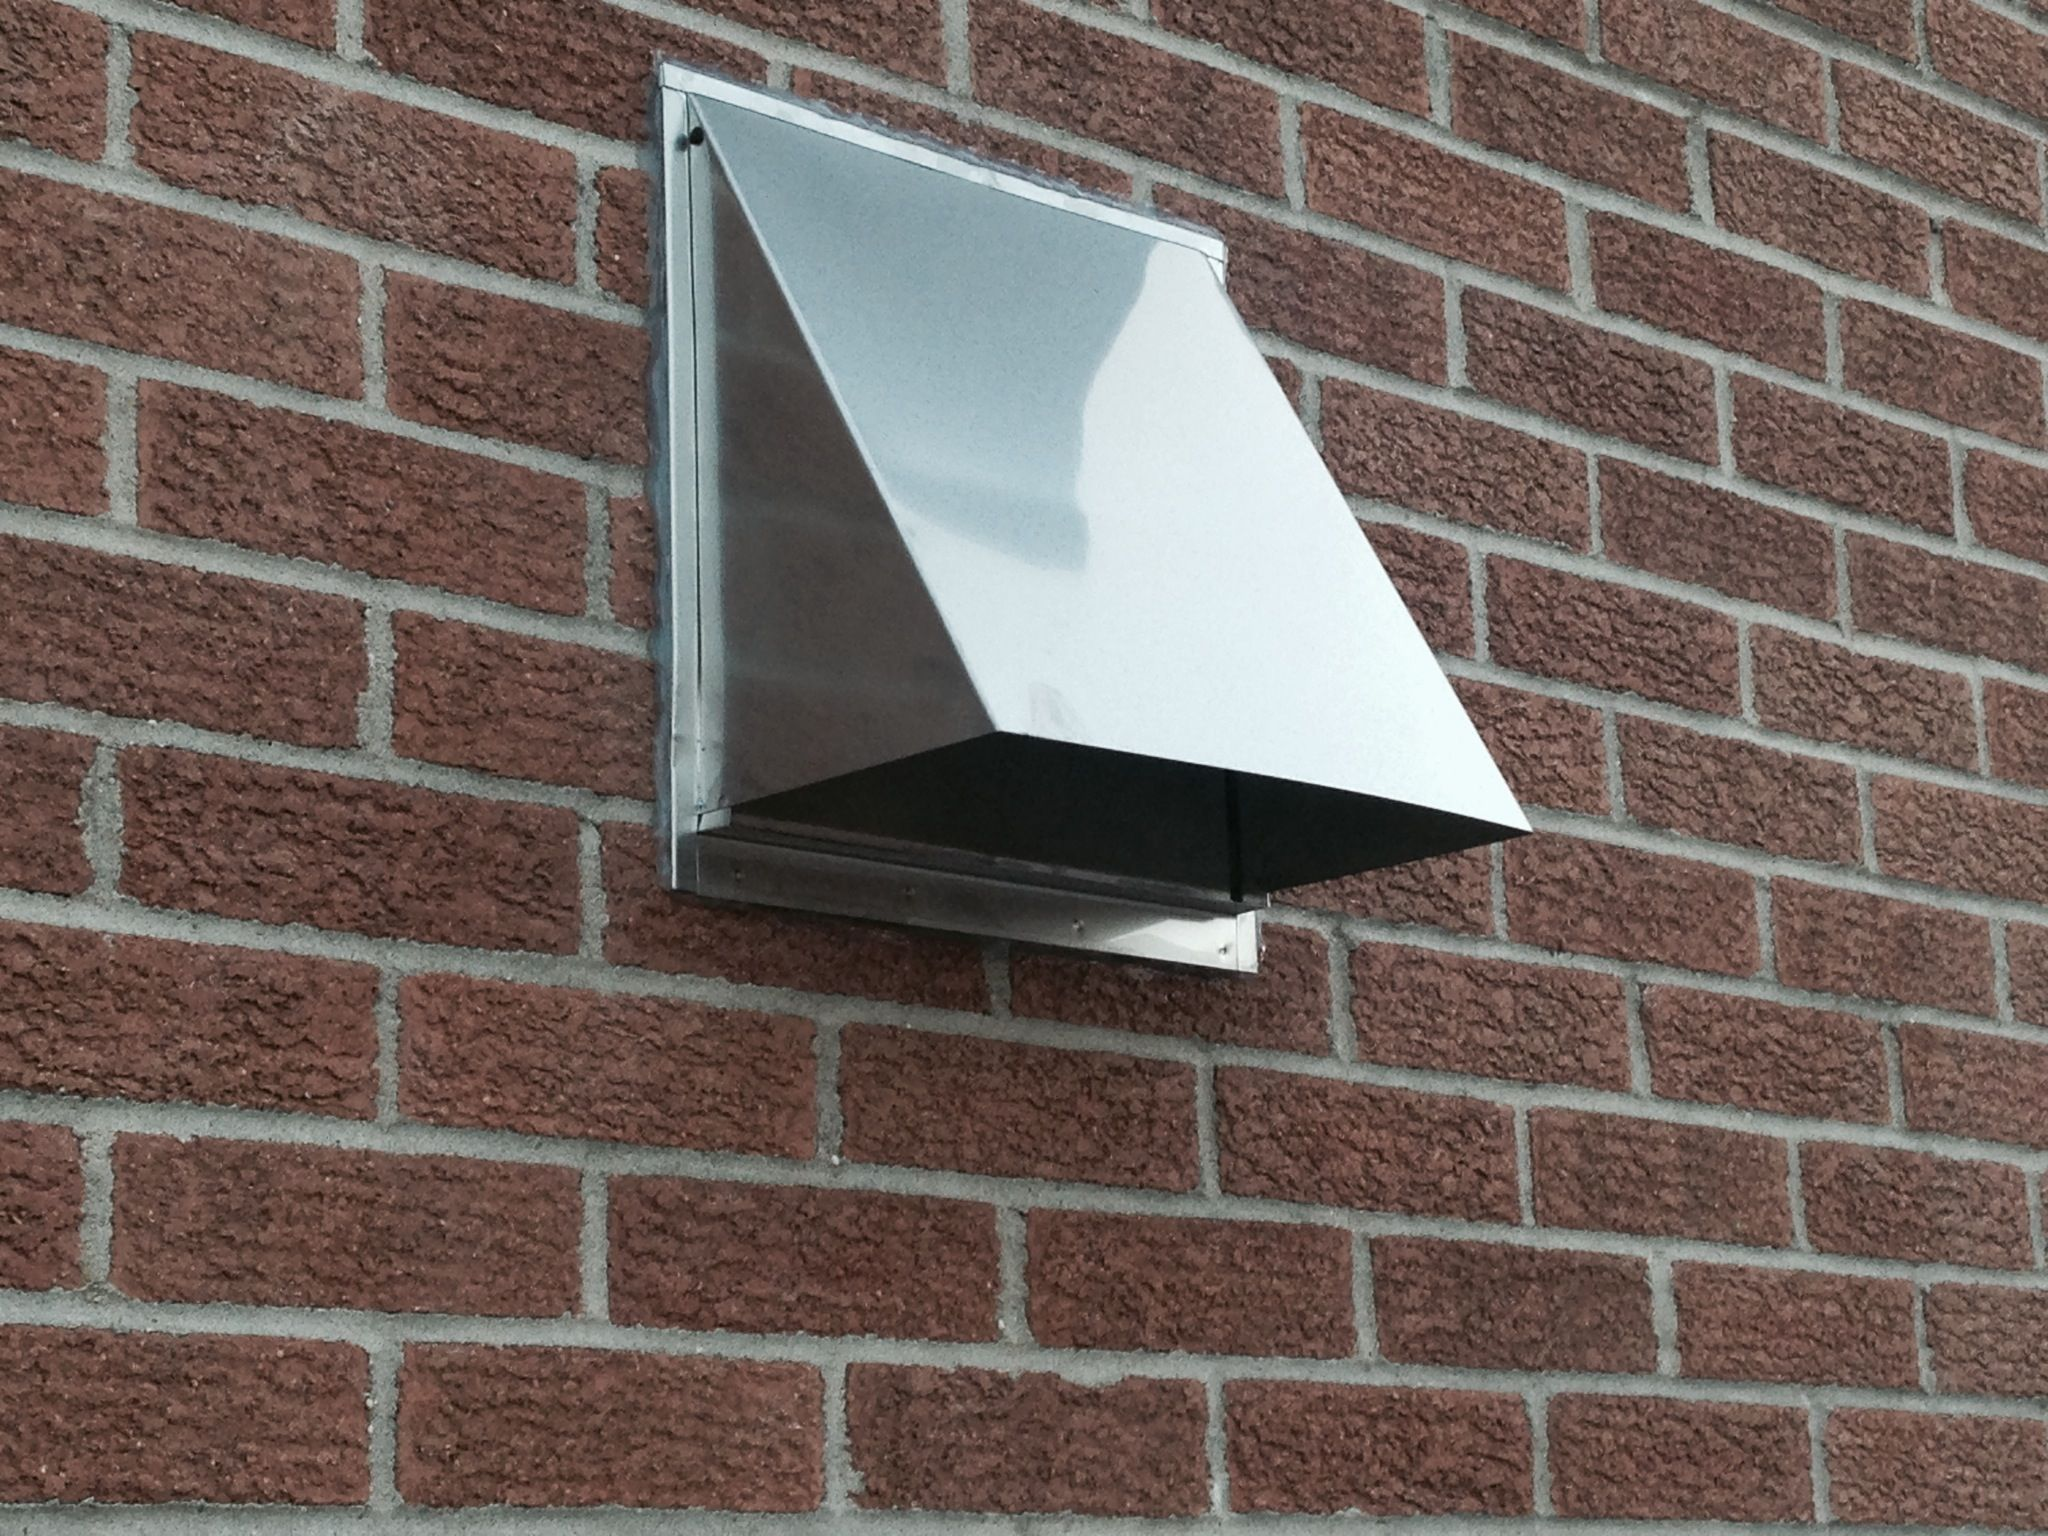 Exterior wall vent covers wall coverings pinterest for Exterior vent covers